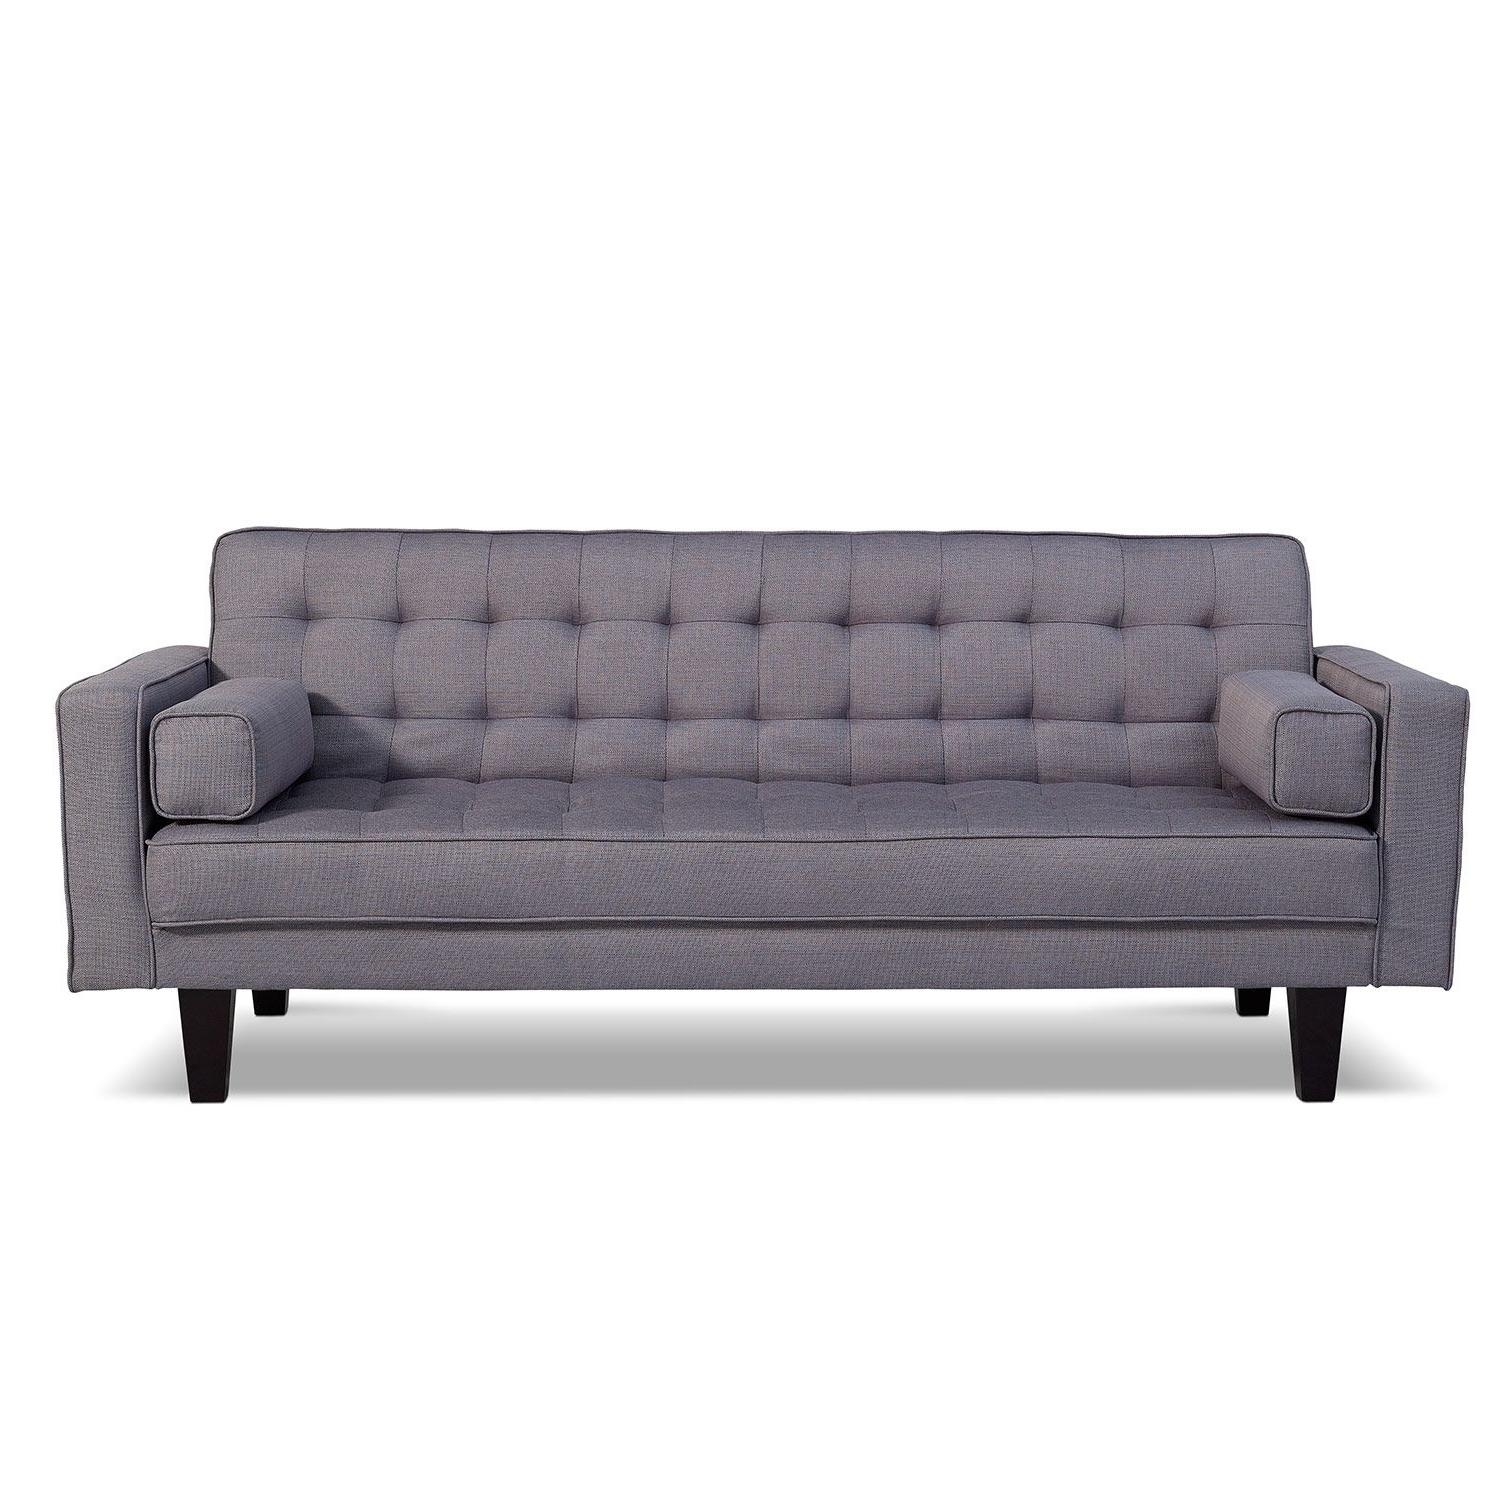 Value Throughout Most Recent City Sofa Beds (View 7 of 20)